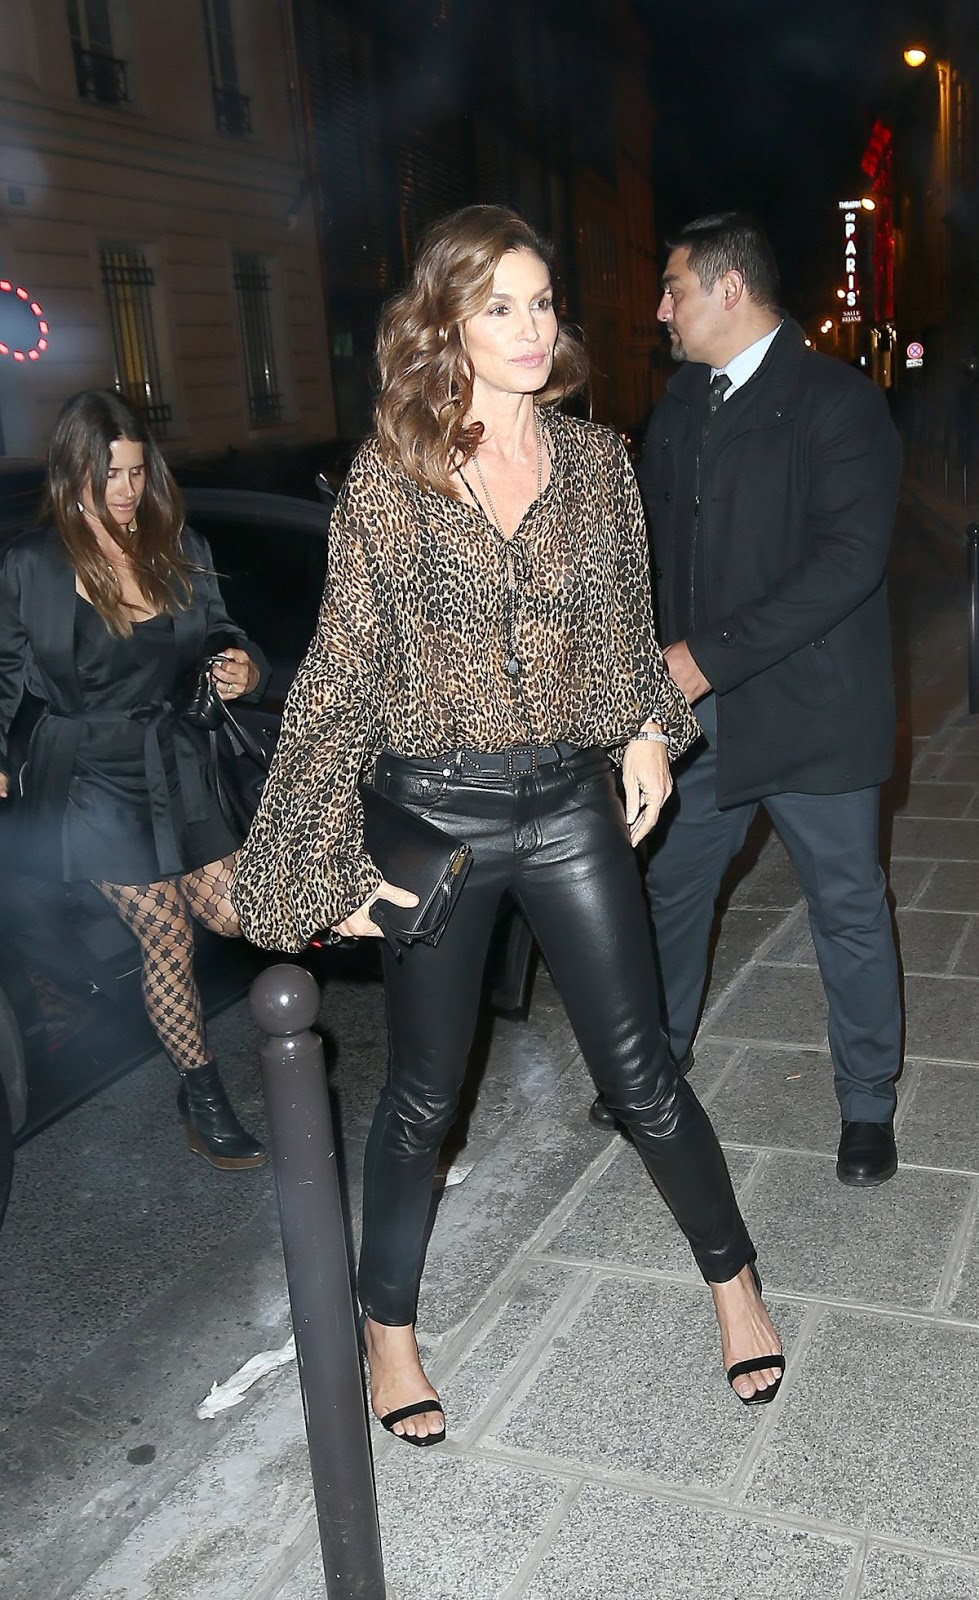 Paparazzi Cindy Crawford naked (89 photos), Sexy, Sideboobs, Twitter, butt 2006